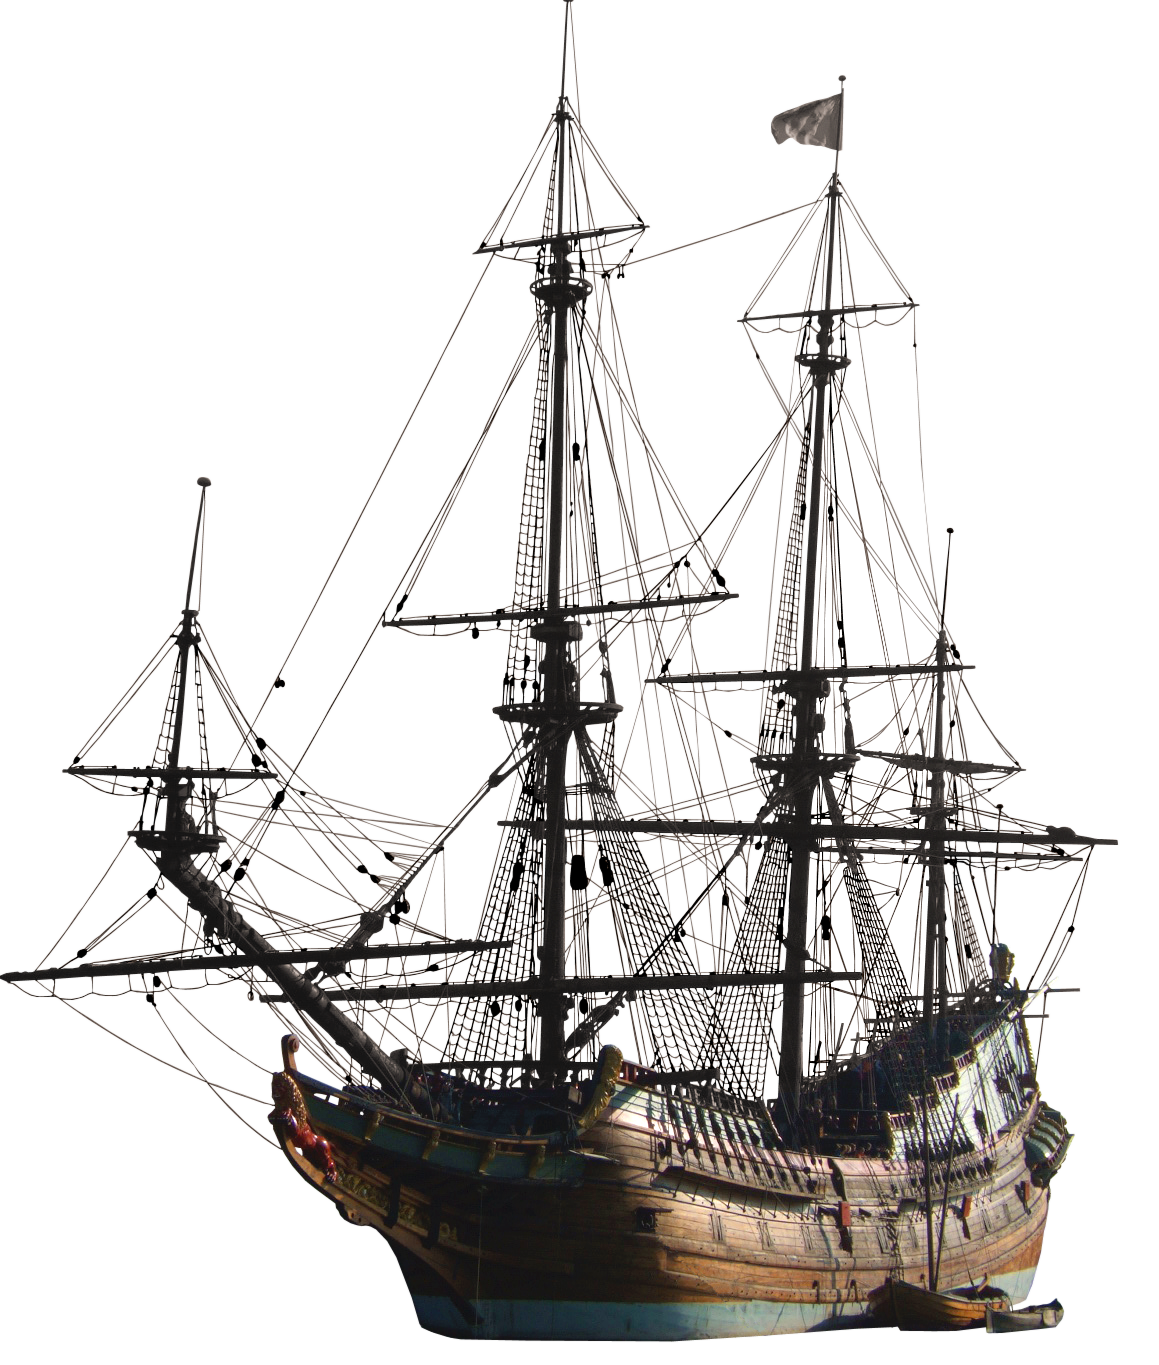 Schooner drawing endeavour ship. Old by gioja thc